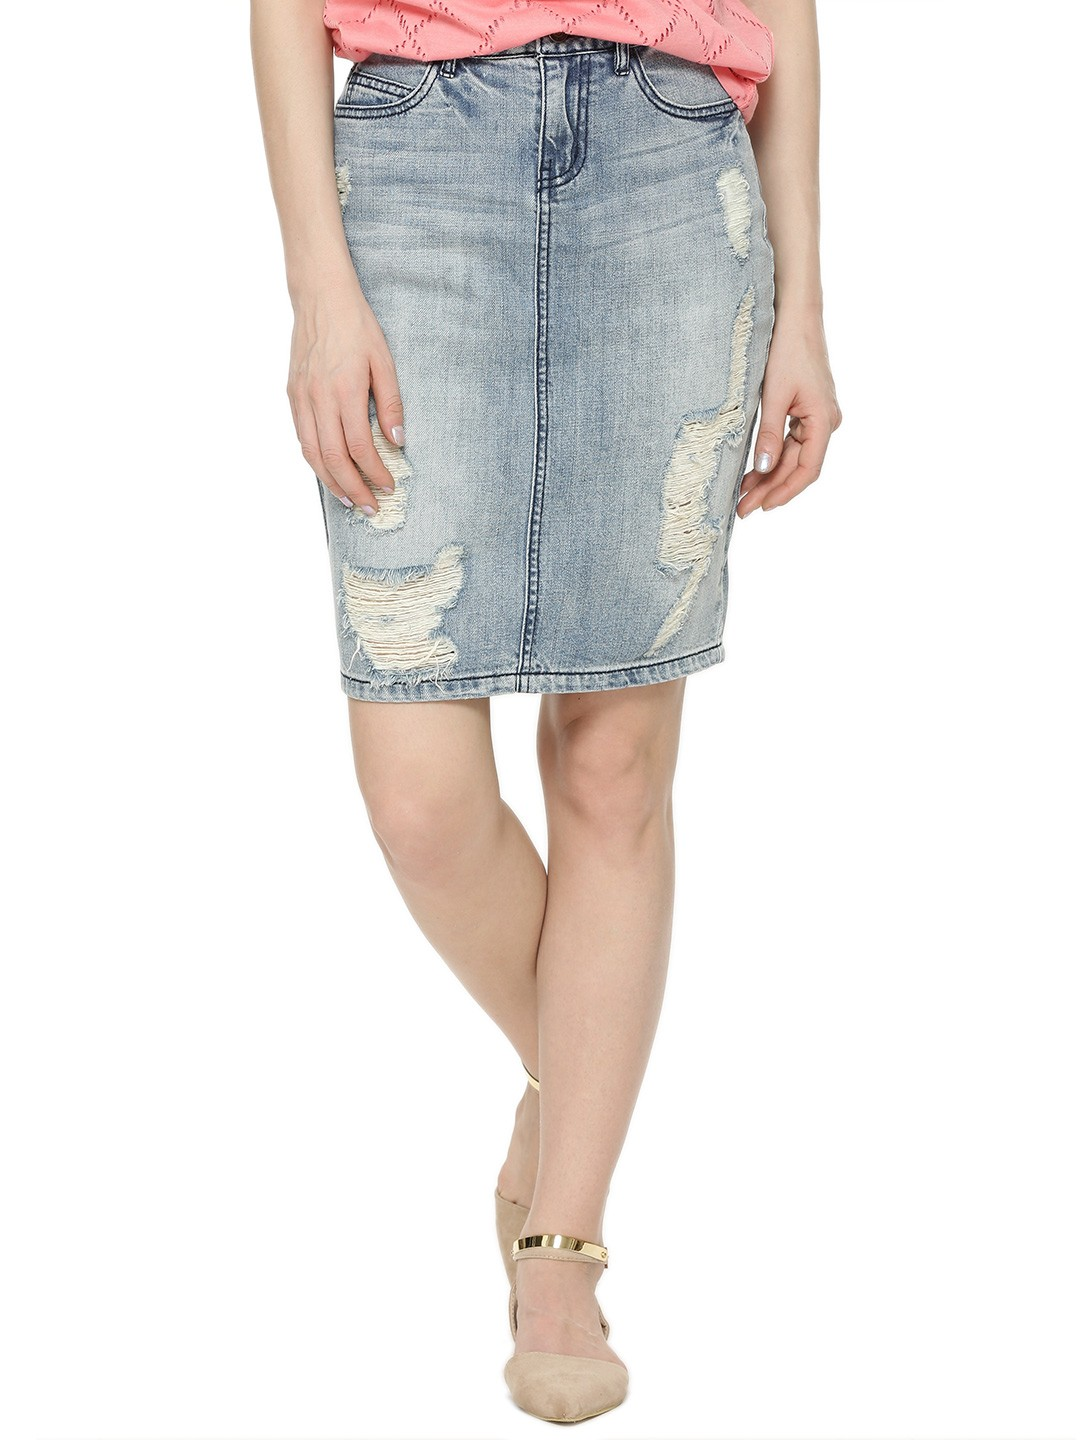 buy denim skirts redskirtz